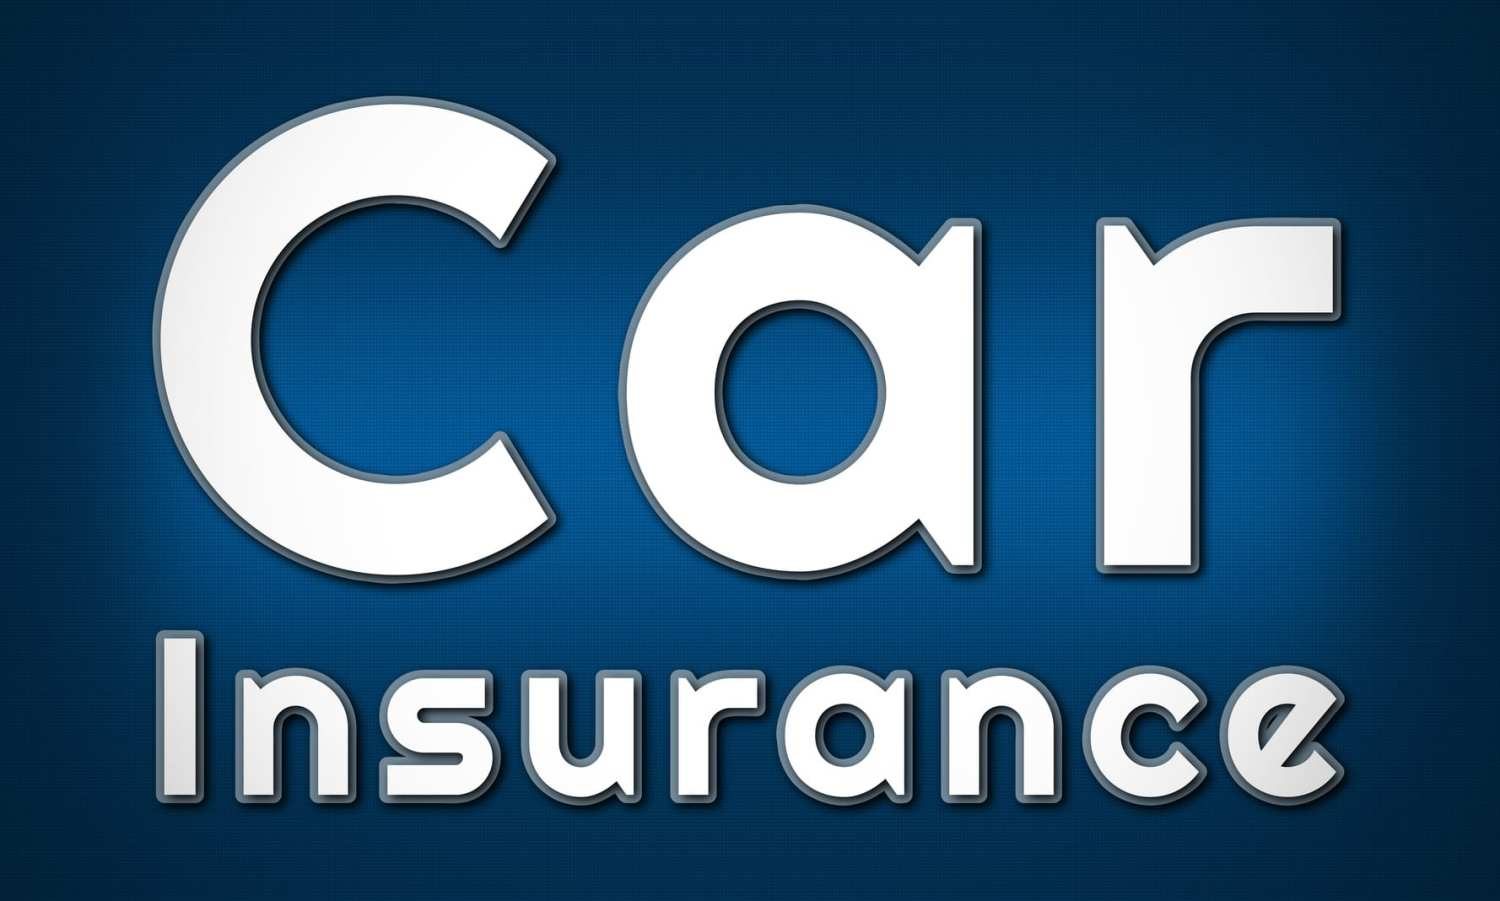 Compare Car Insurance Quotes >> Compare Car Insurance Quotes Fast And Secure Einsurance